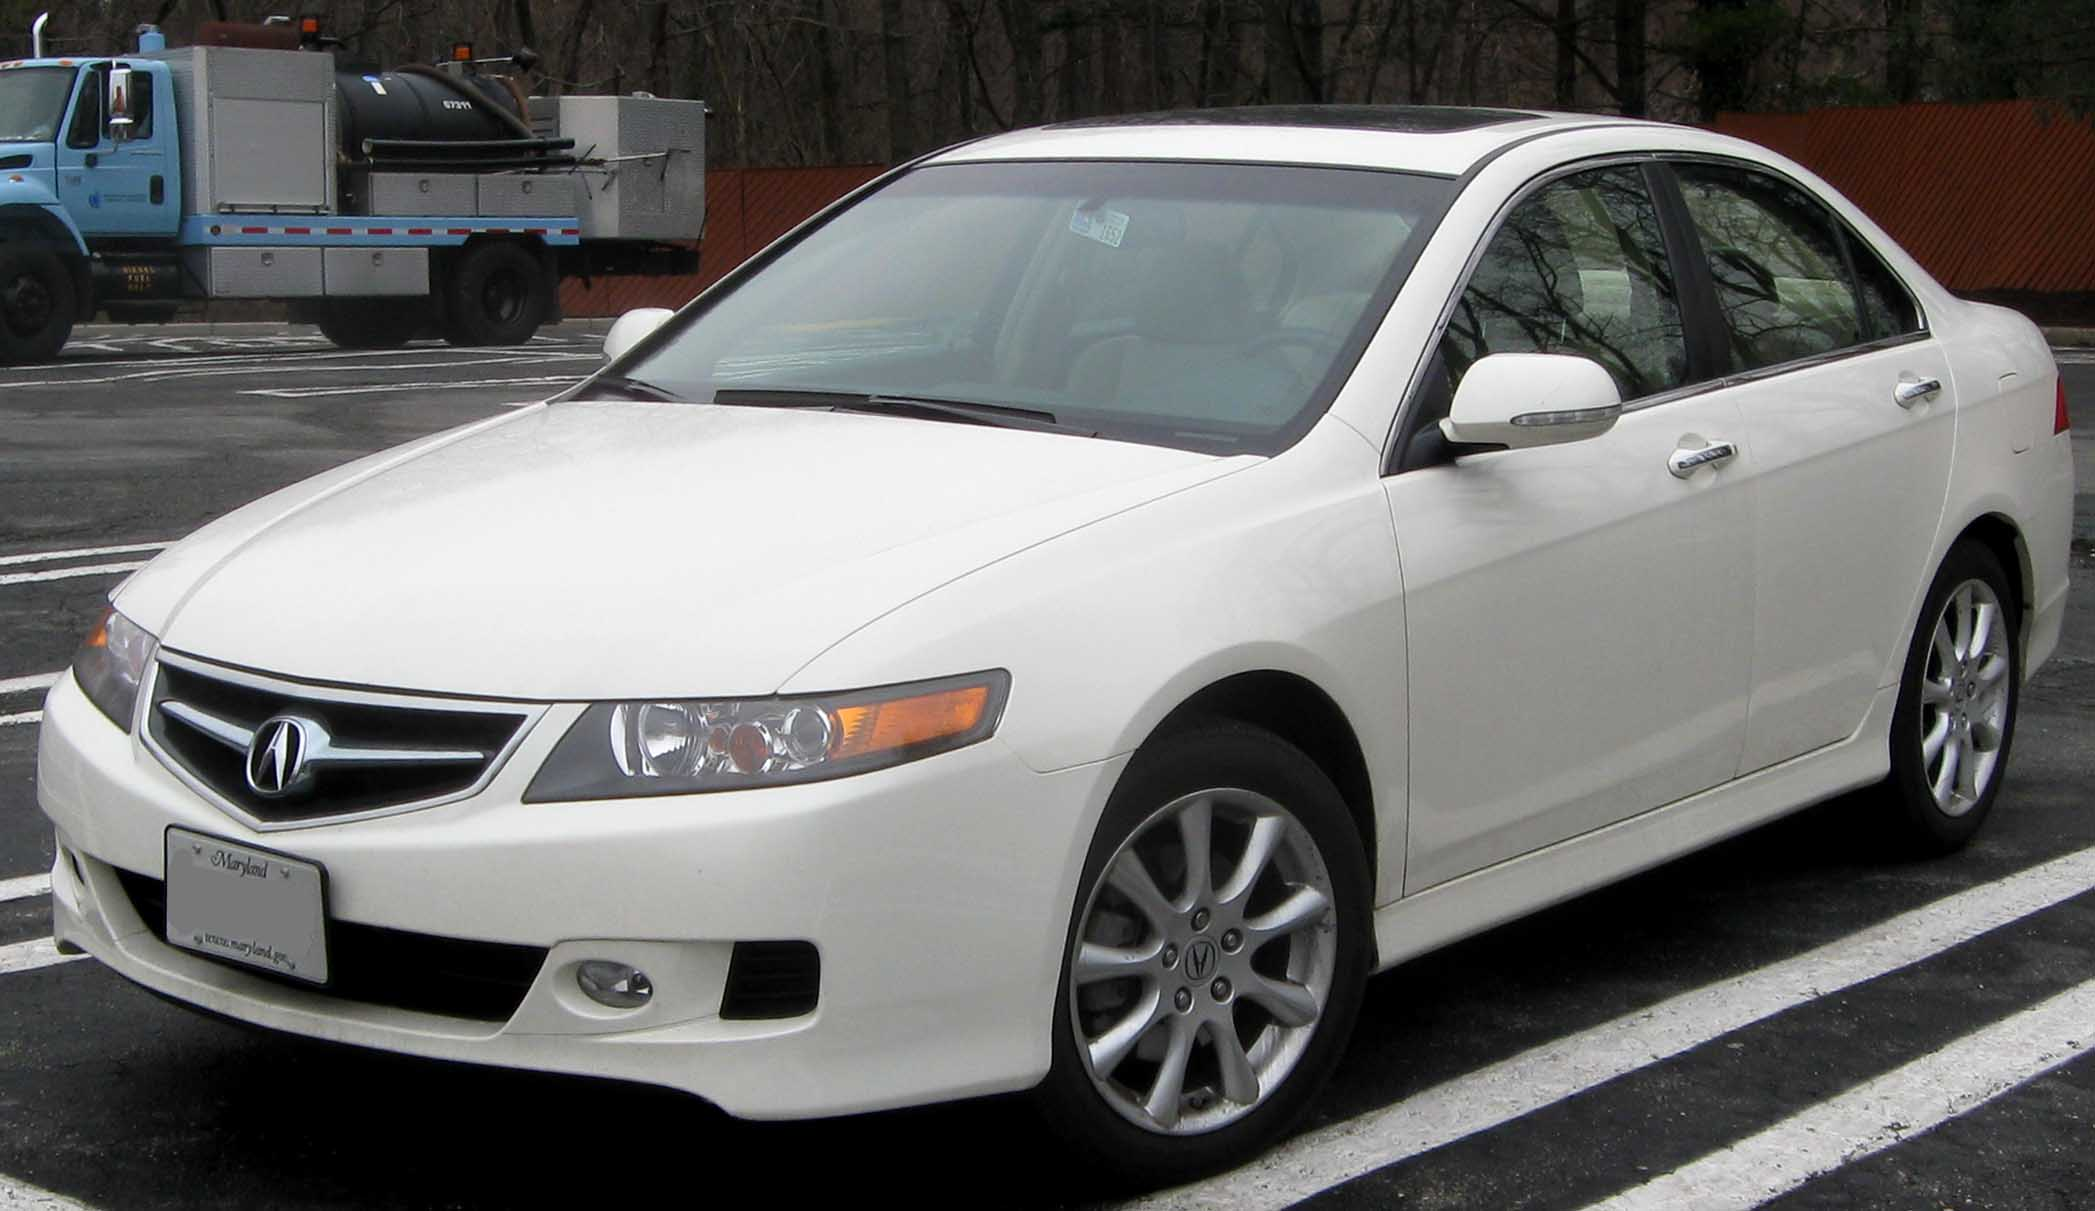 acura images